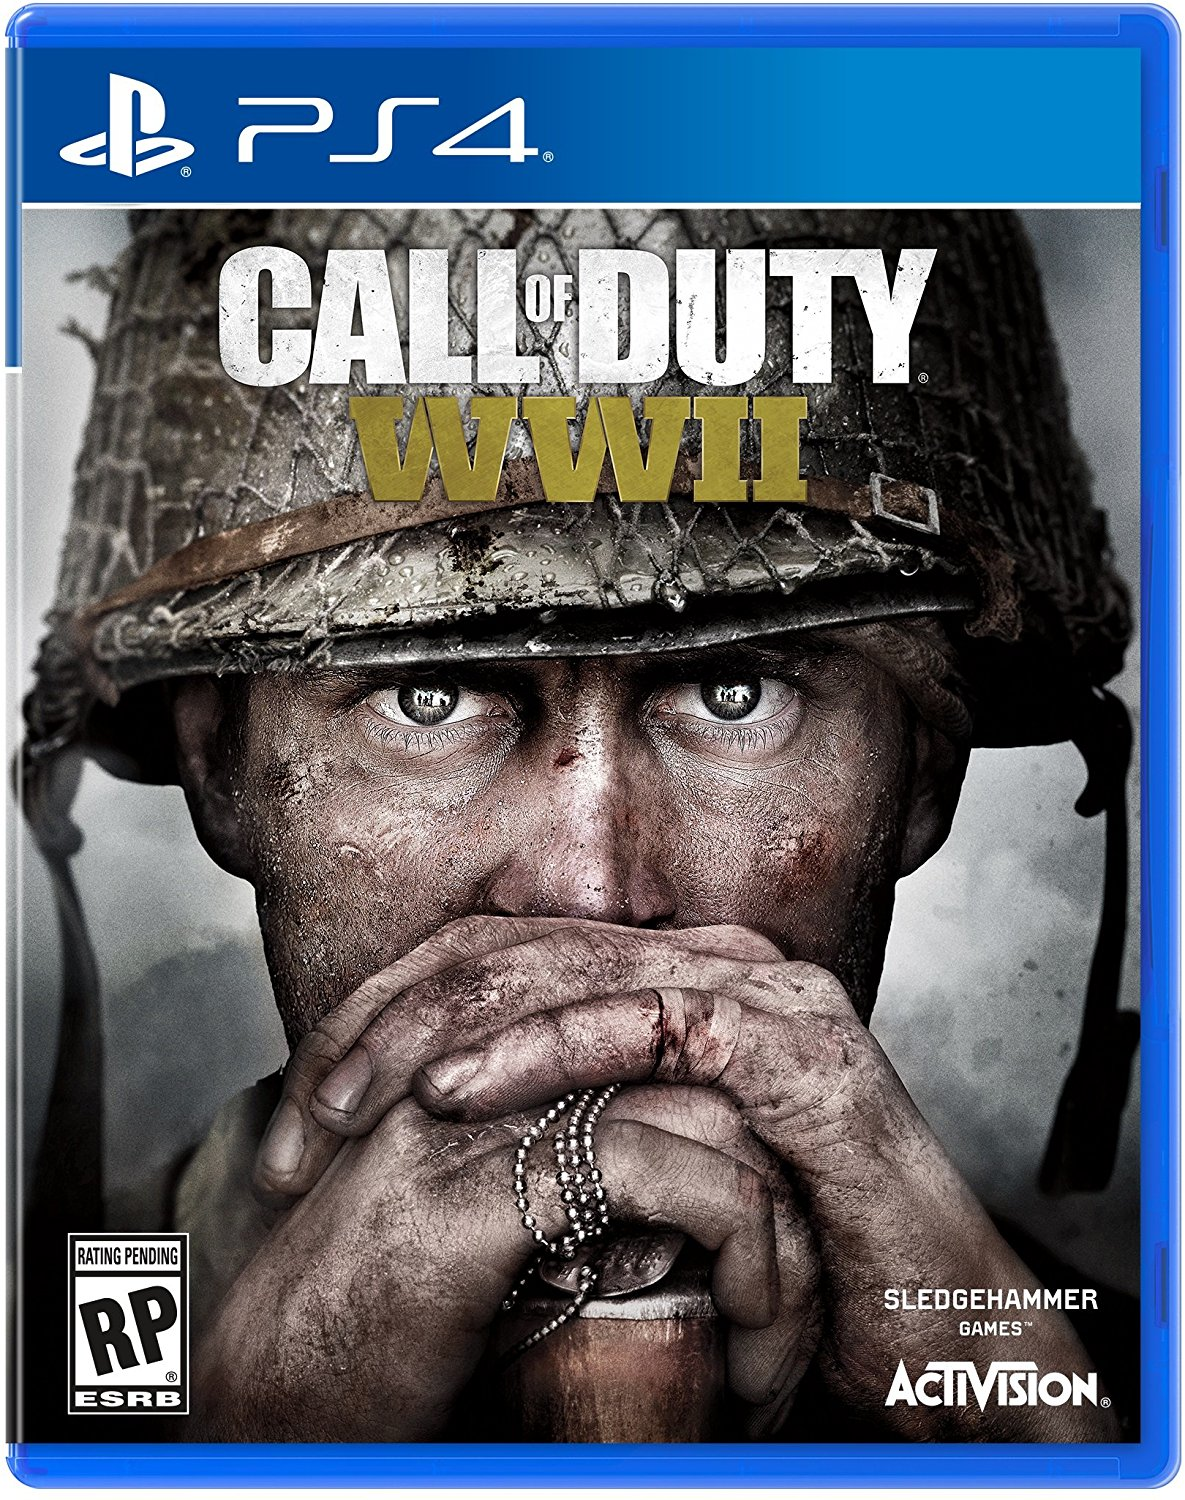 PS4 COD Call of Duty: WWII